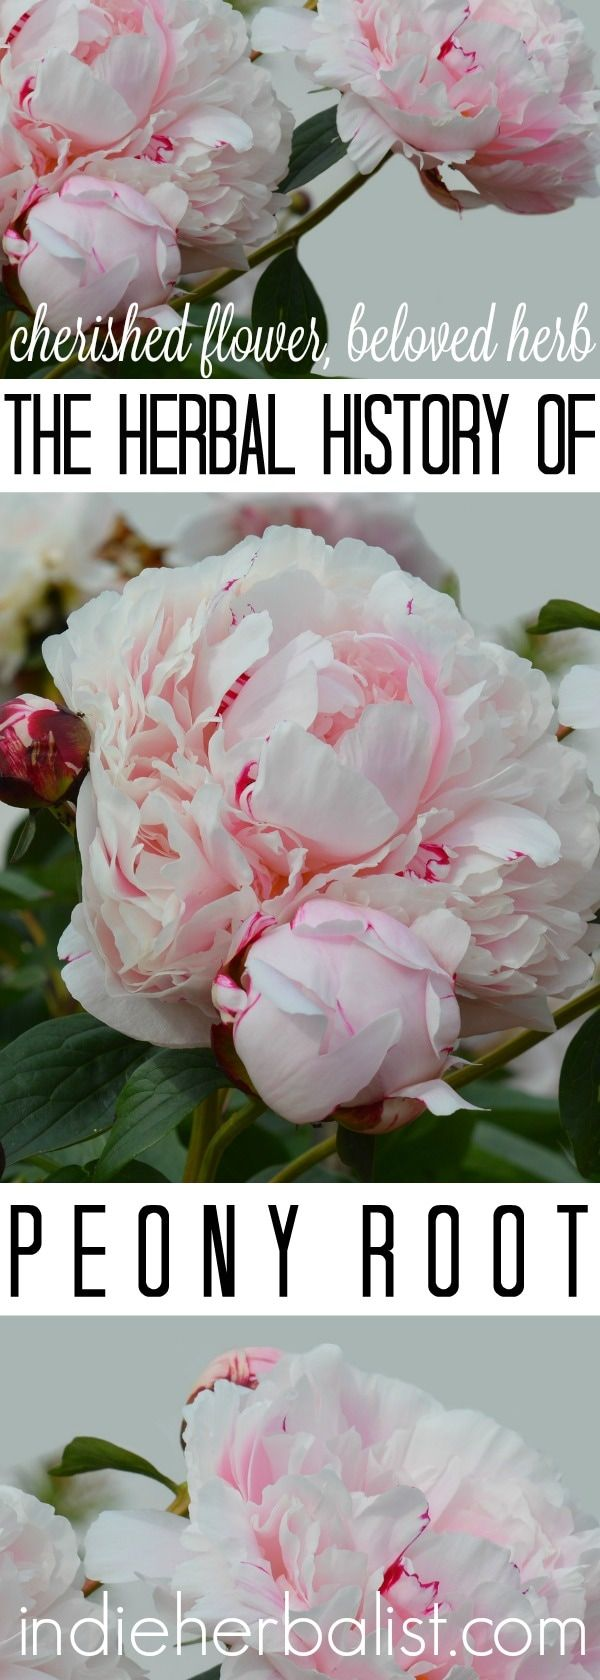 Peony Root - cherished flower, beloved herb